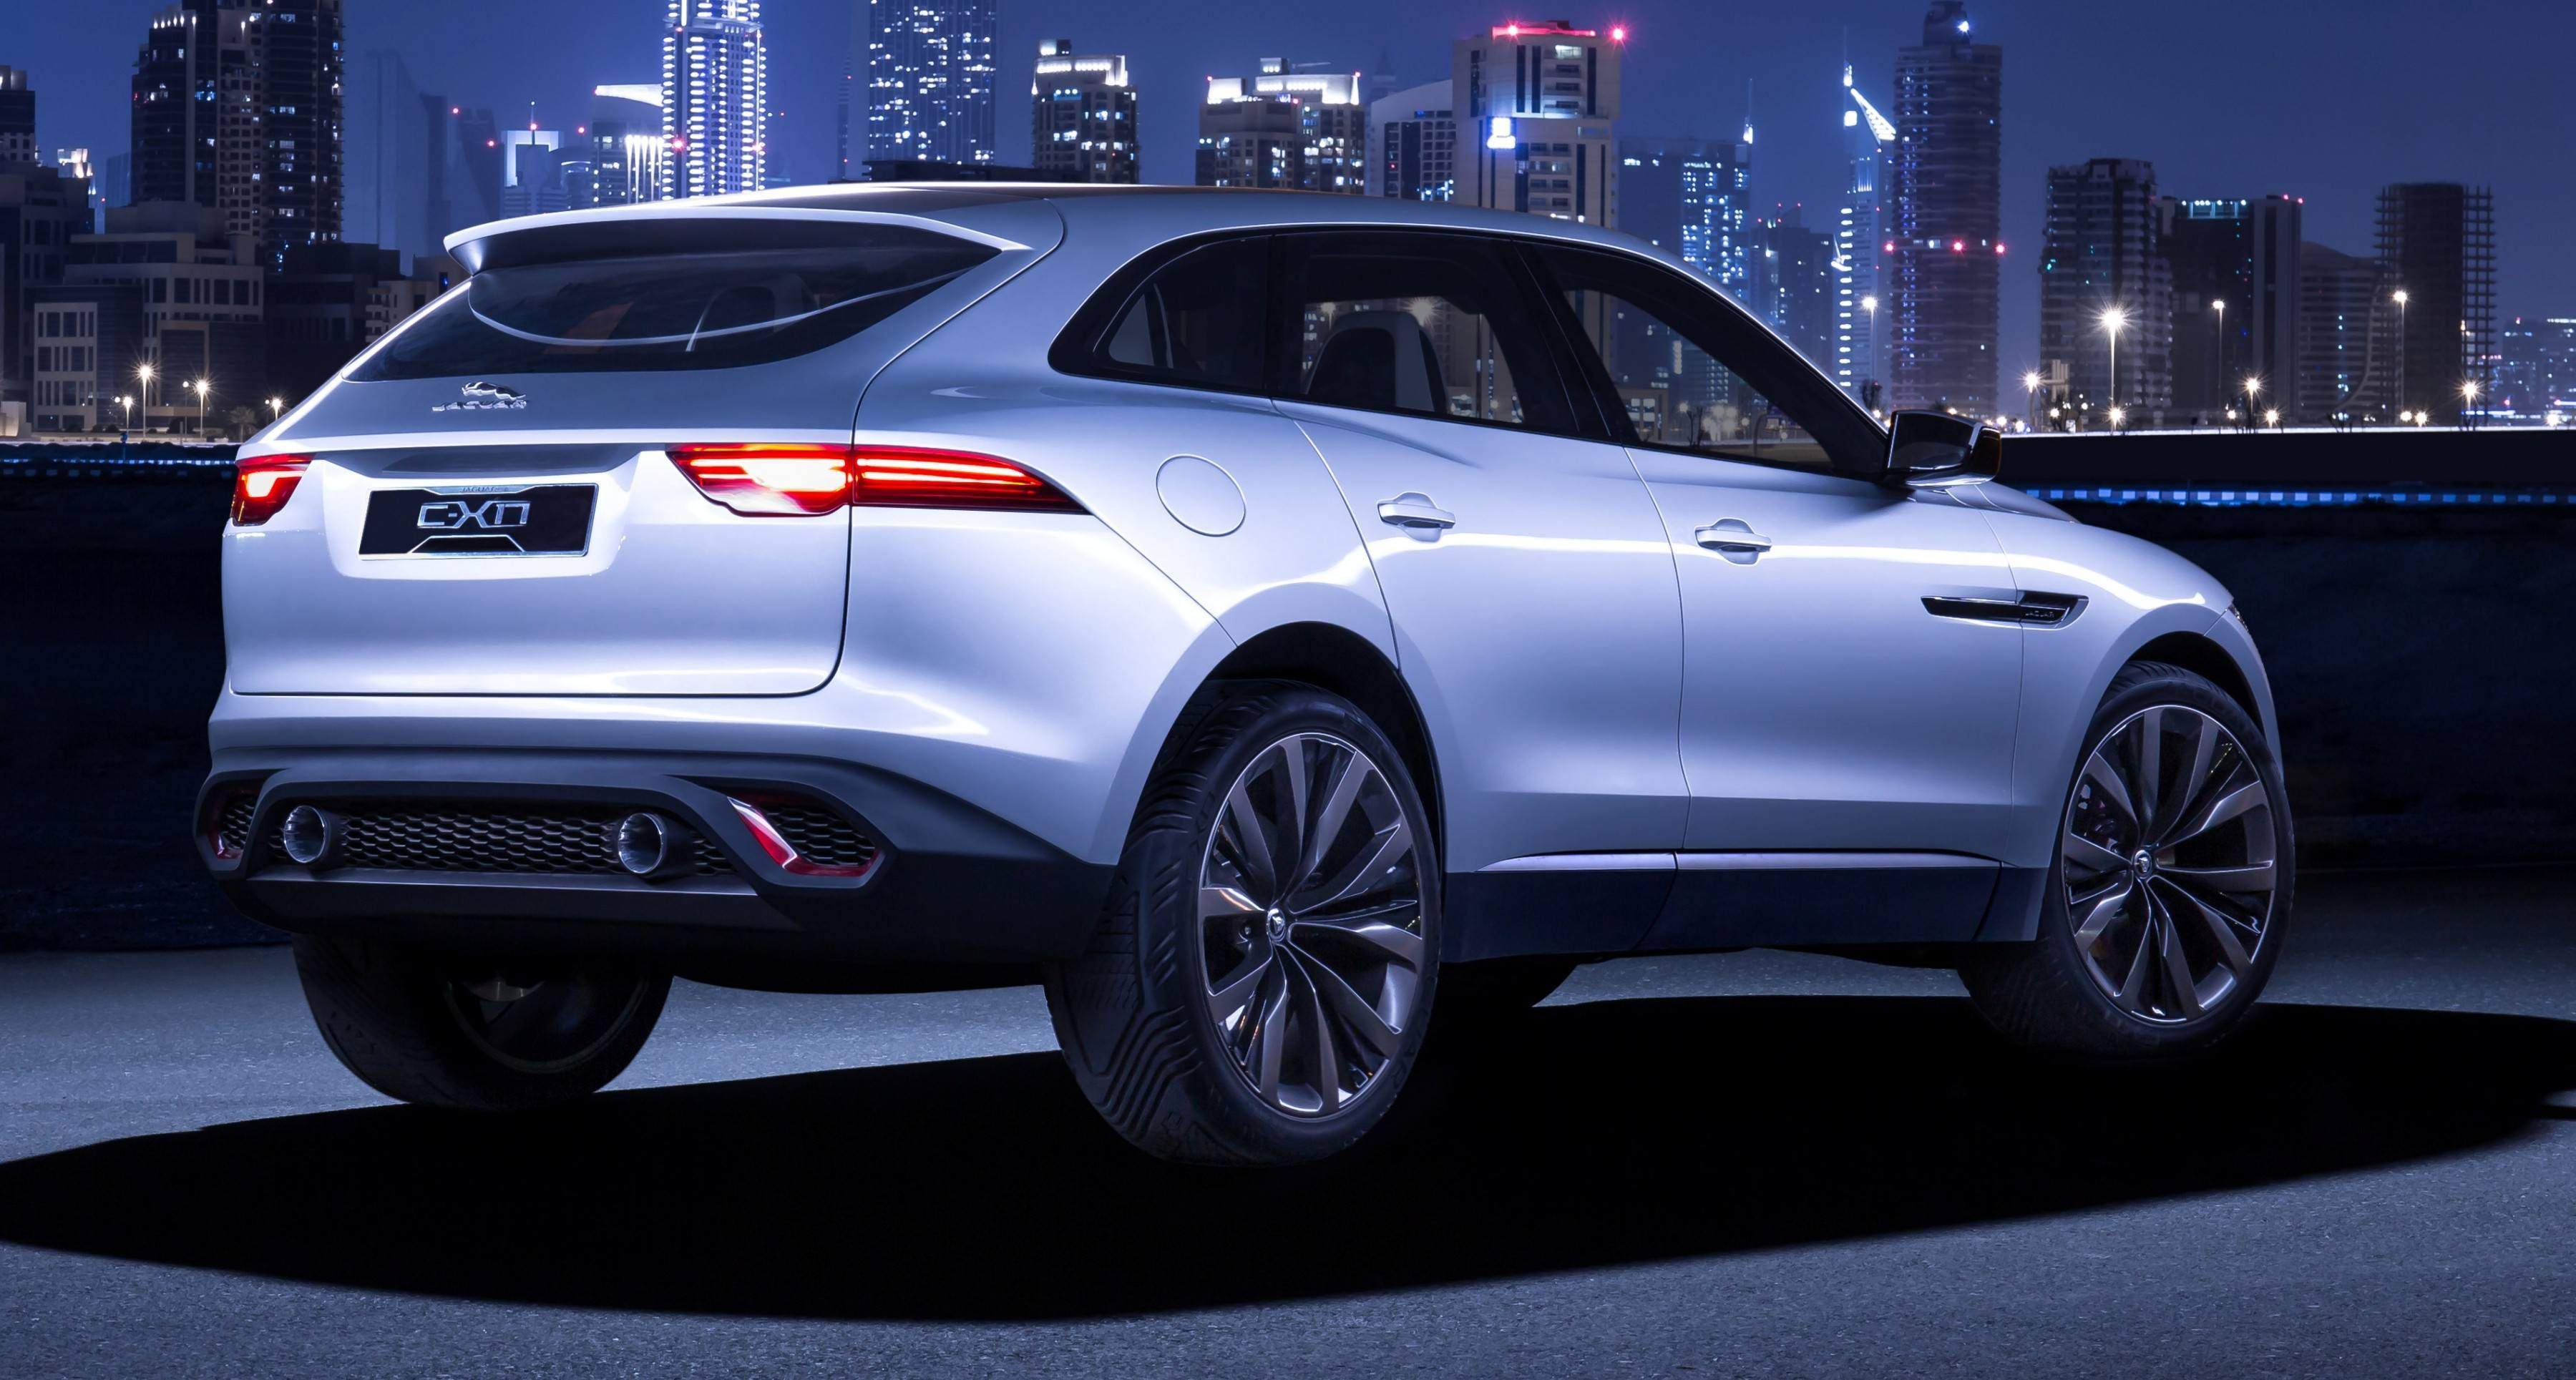 performance new compact the content e with pace suv article releases sports car looks jpg jaguar